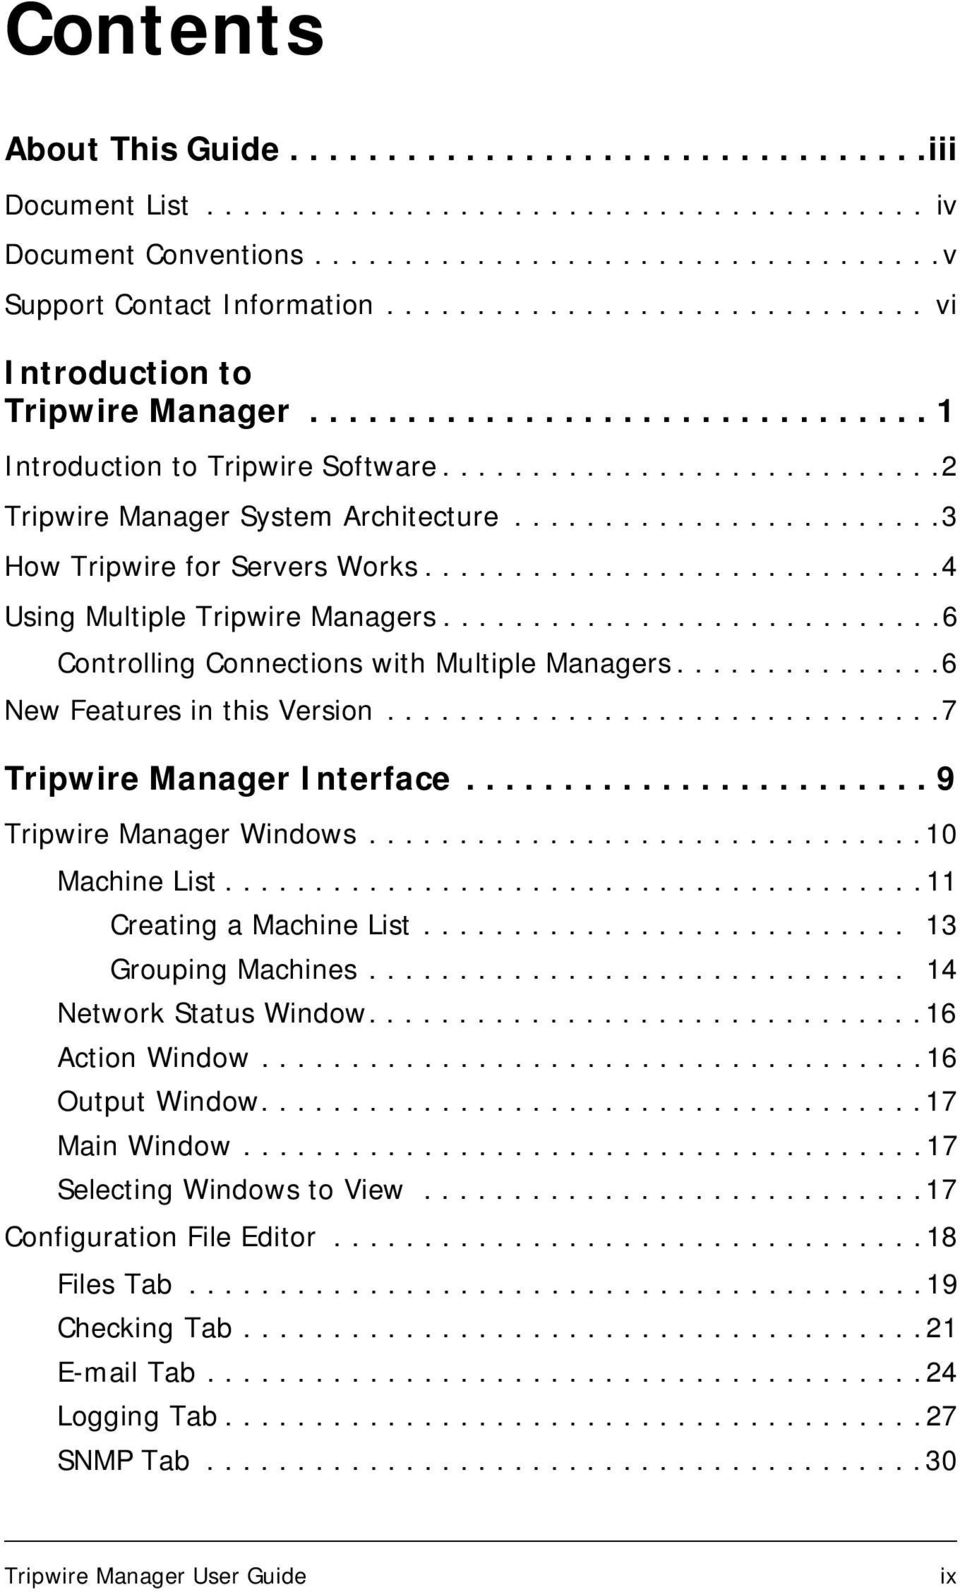 .......................3 How Tripwire for Servers Works.............................4 Using Multiple Tripwire Managers............................6 Controlling Connections with Multiple Managers.